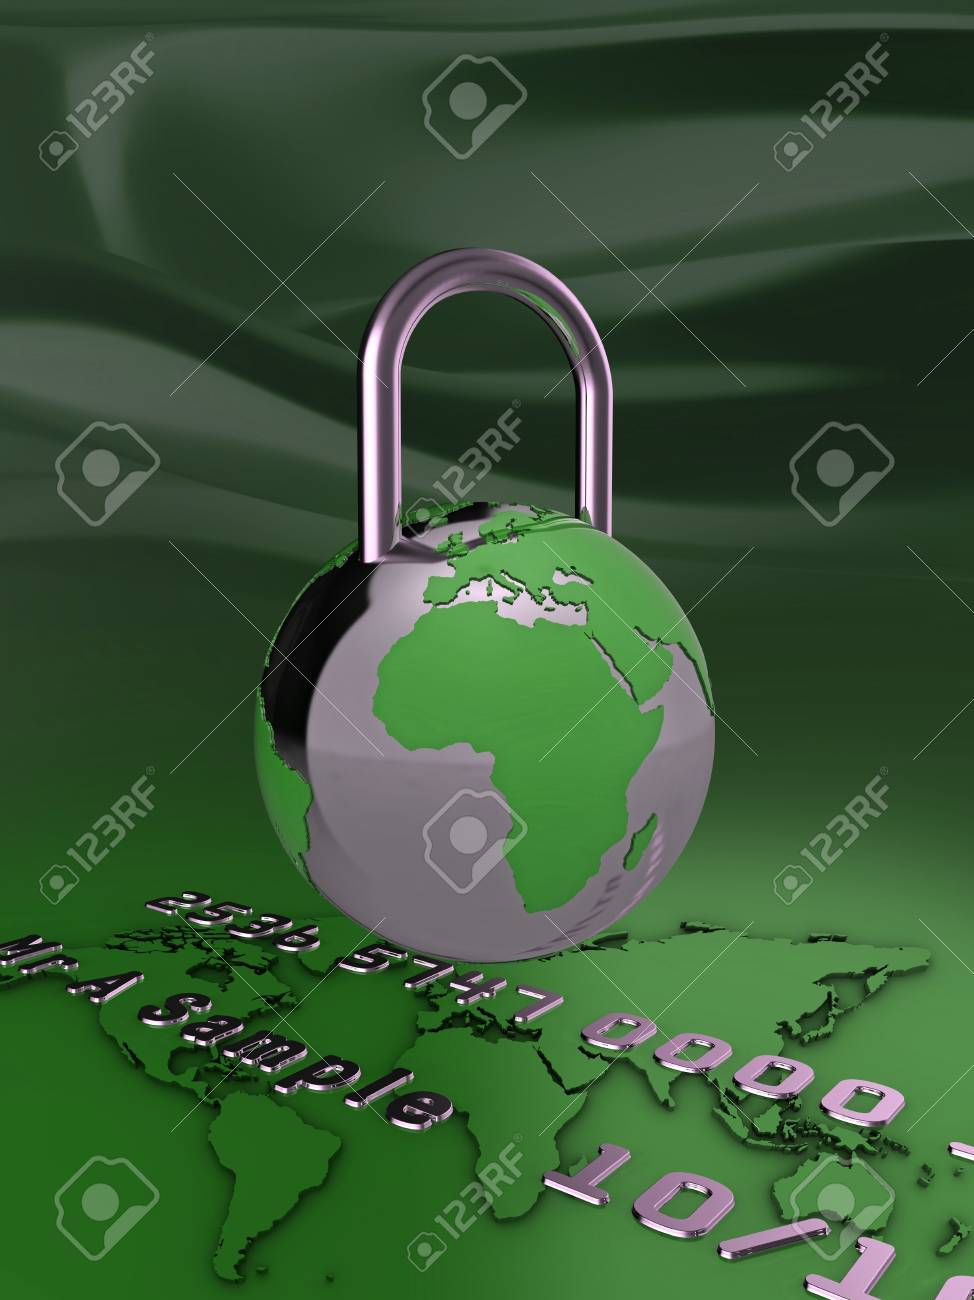 Abstract illustration representing secure online payment. Stock Photo - 5754325